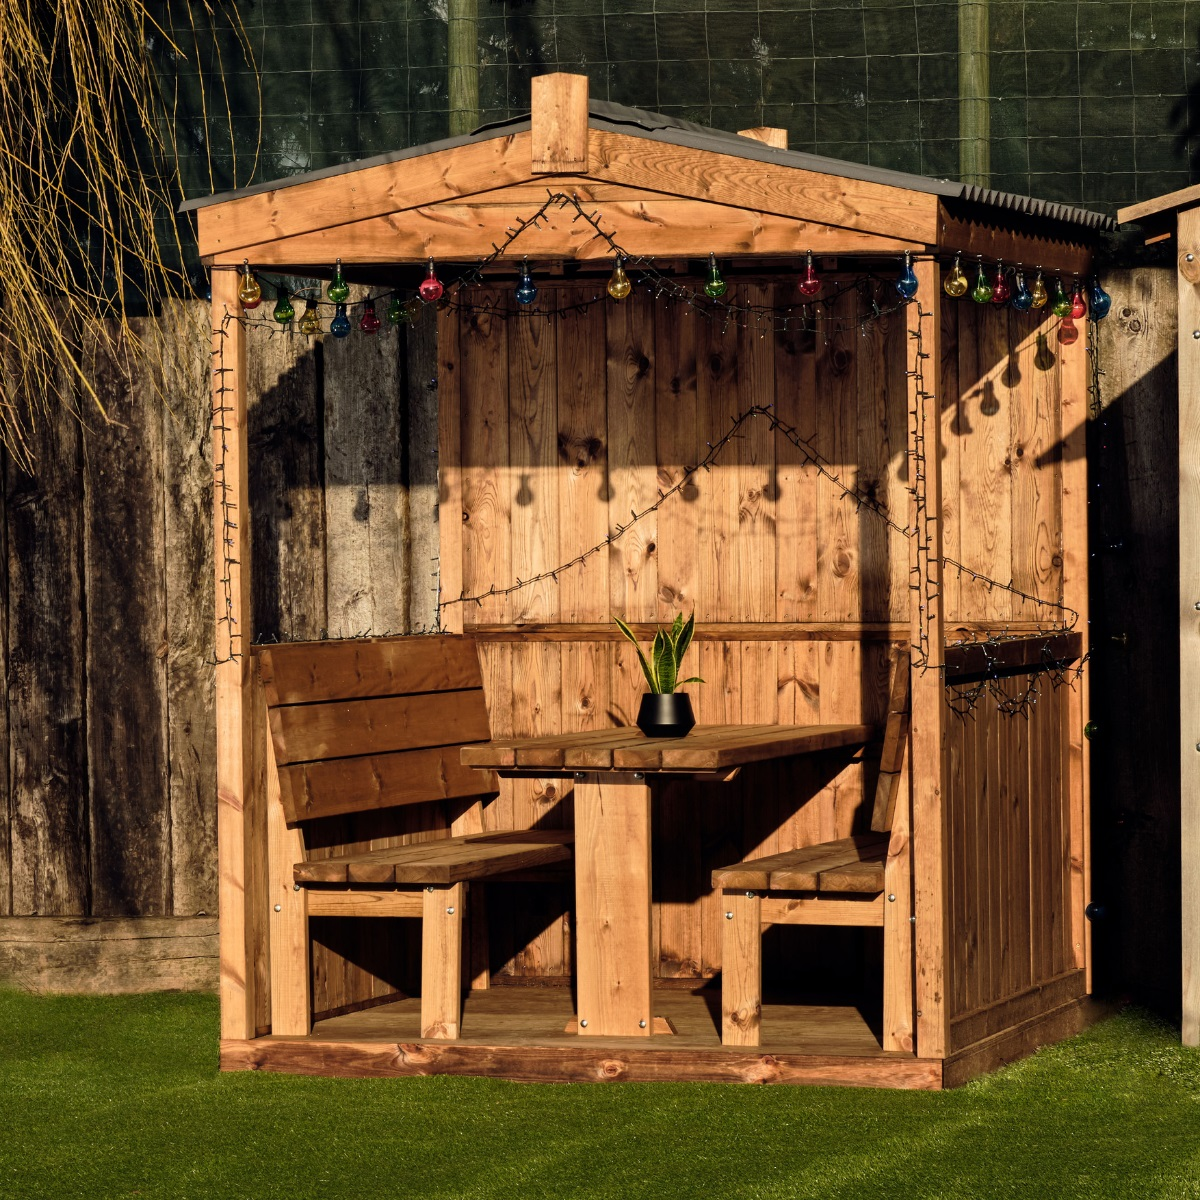 A wooden outdoor dining cabin with roof and back but with open half sides and an open frontage. Bench seats and table for 6 people are fixed inside